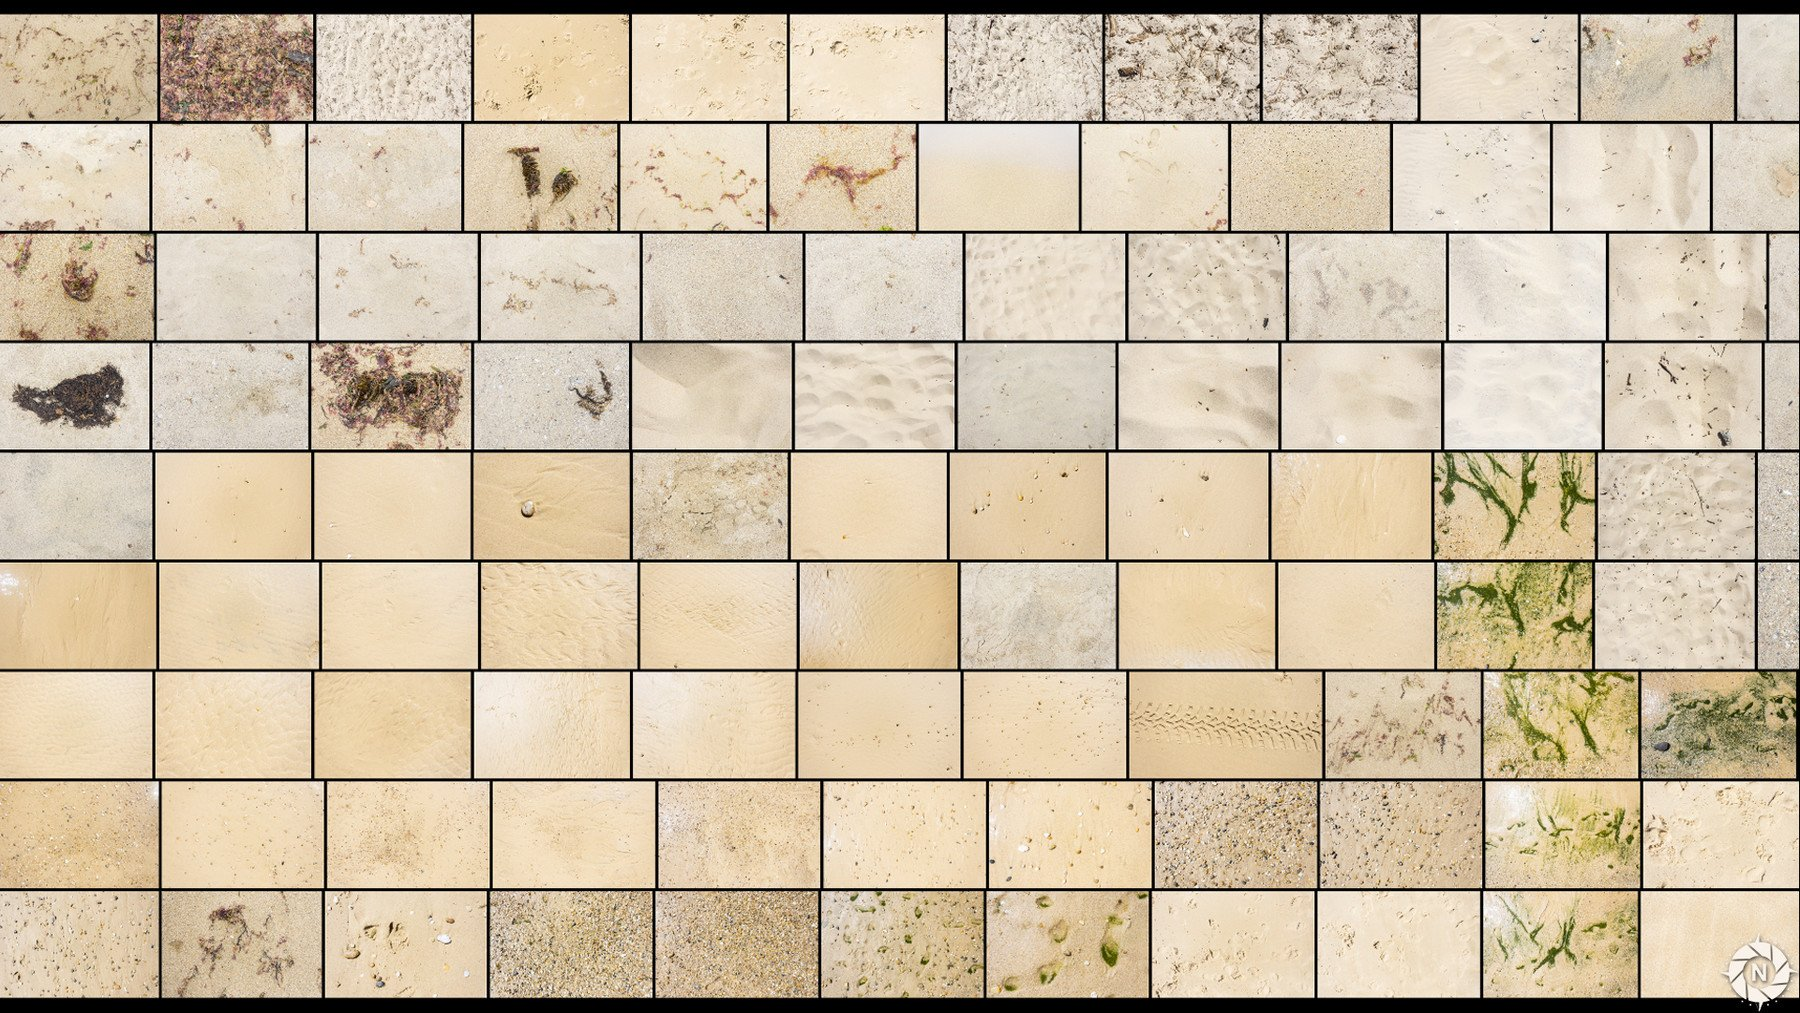 overview images of sand textures